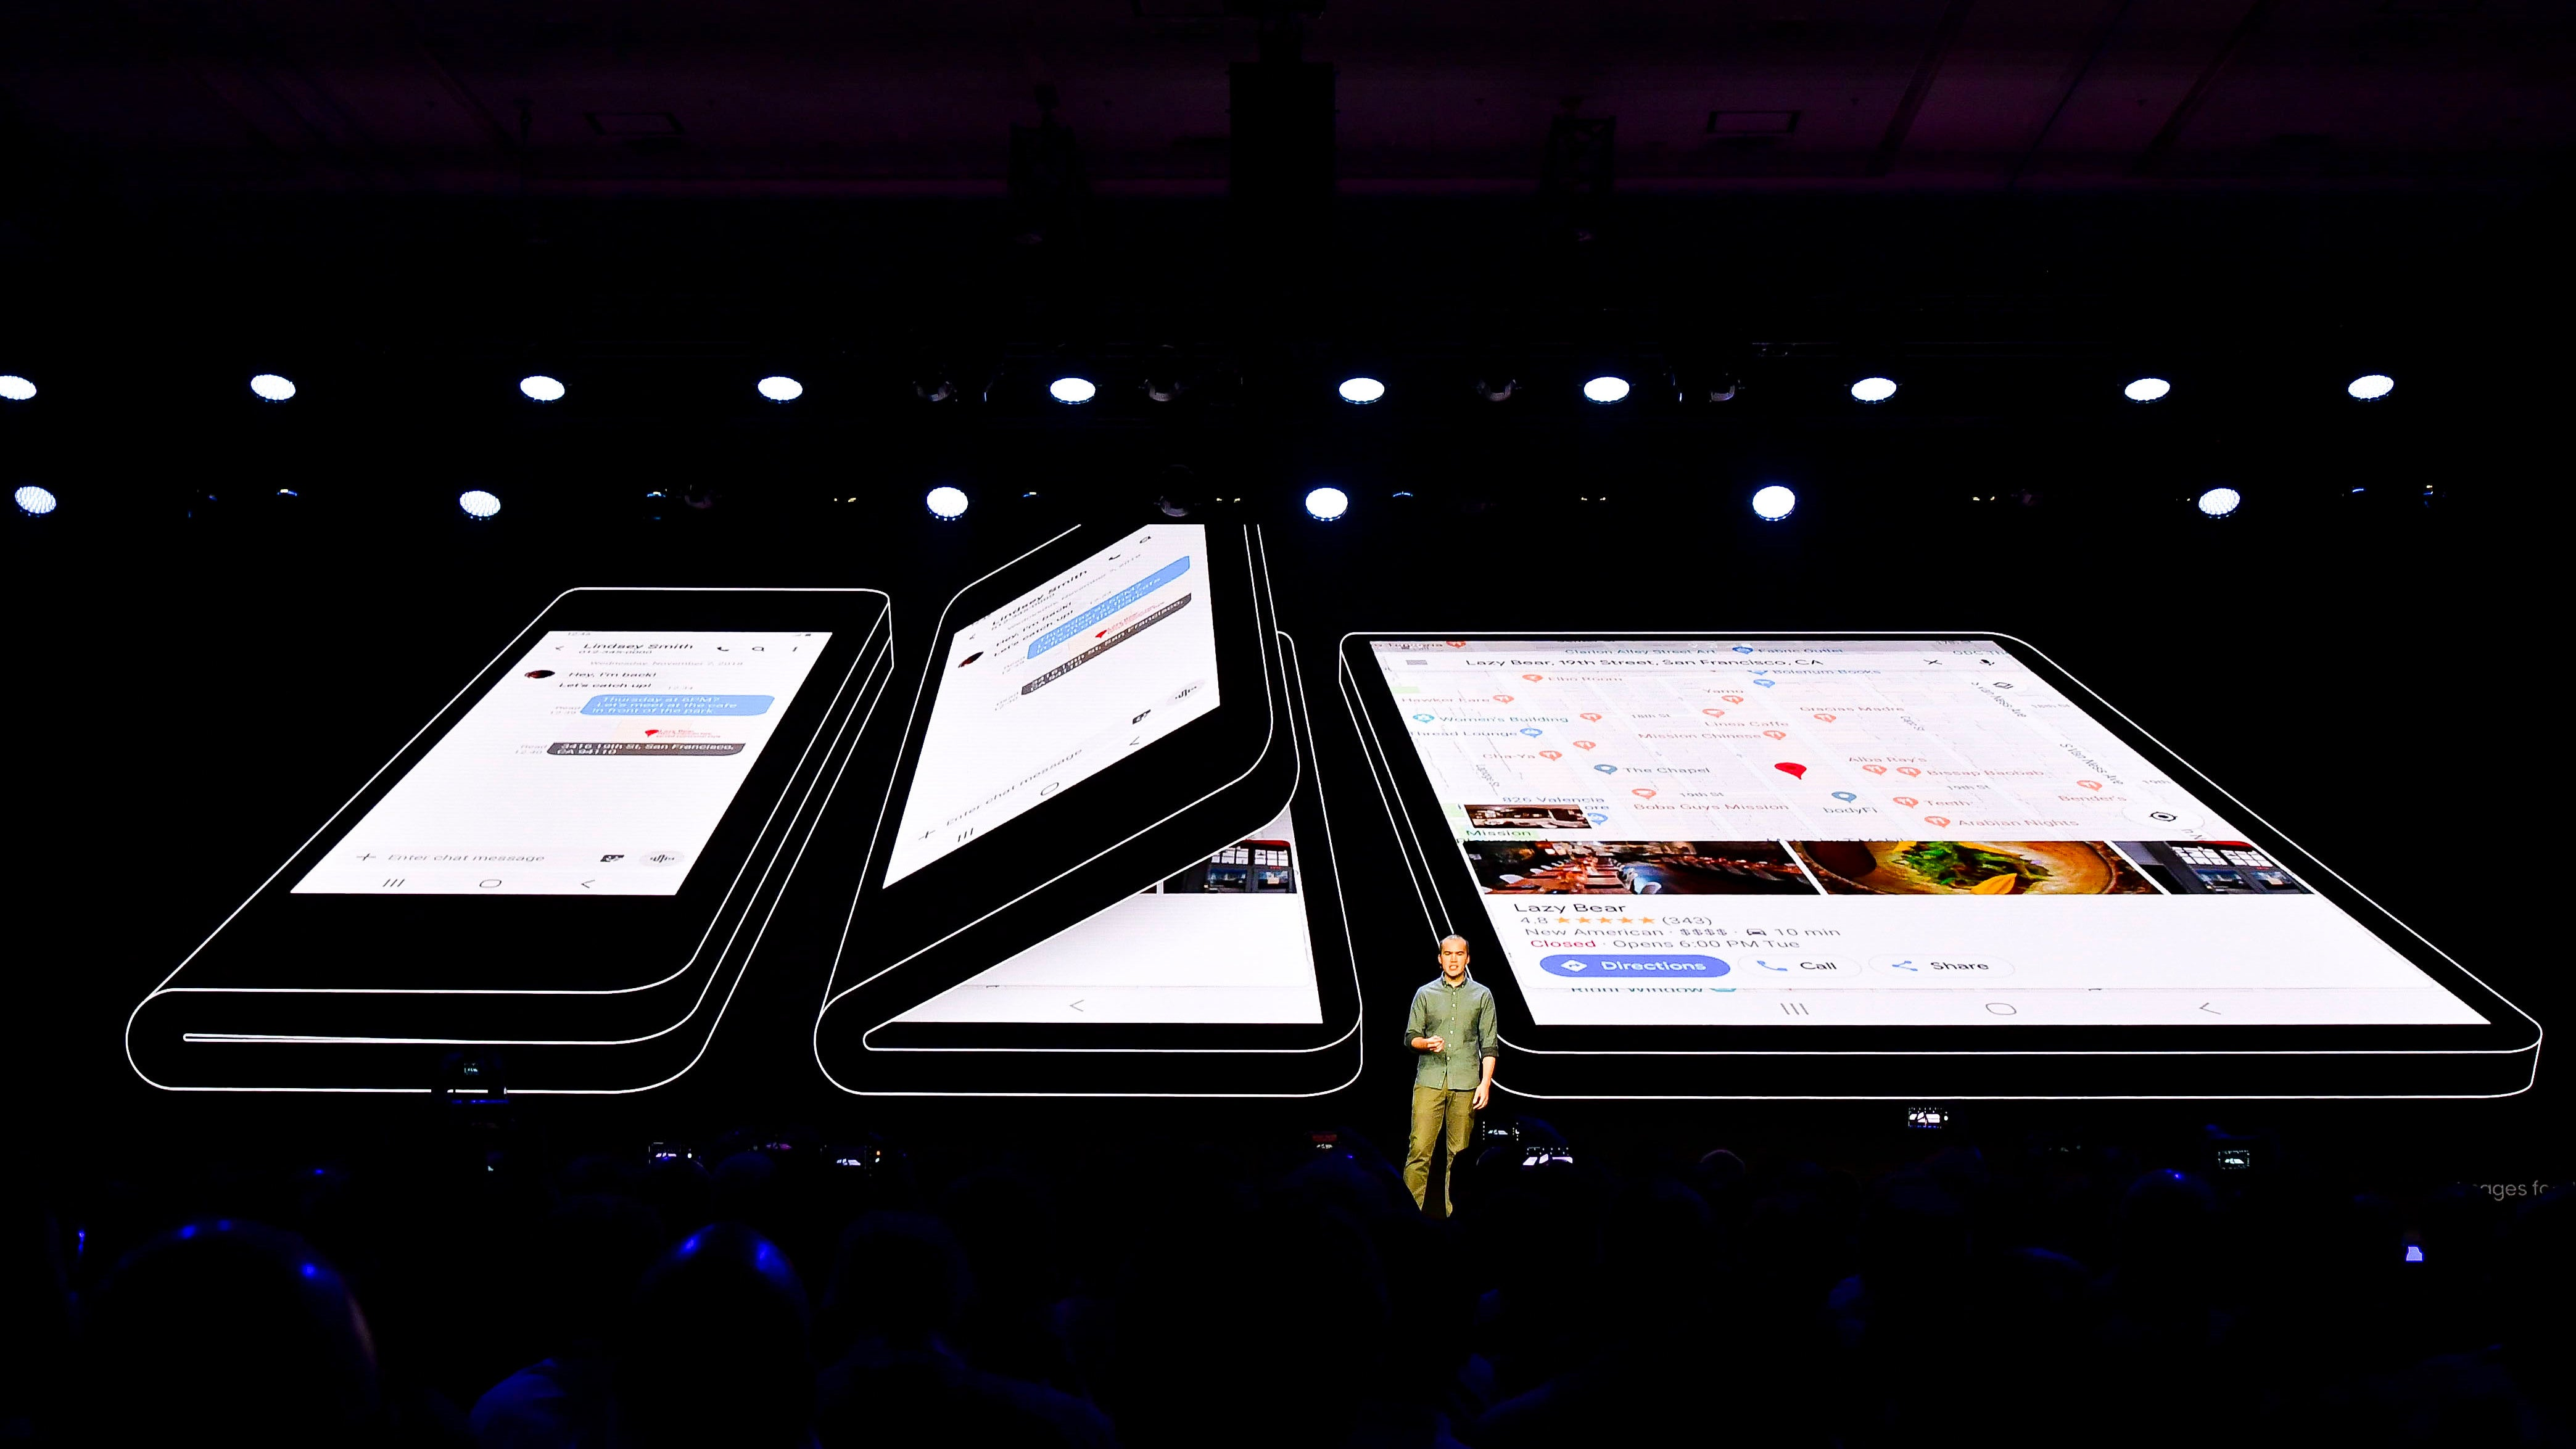 Samsung's First Foldable Phone Could Cost $2,400, And That Price Seems Totally Reasonable